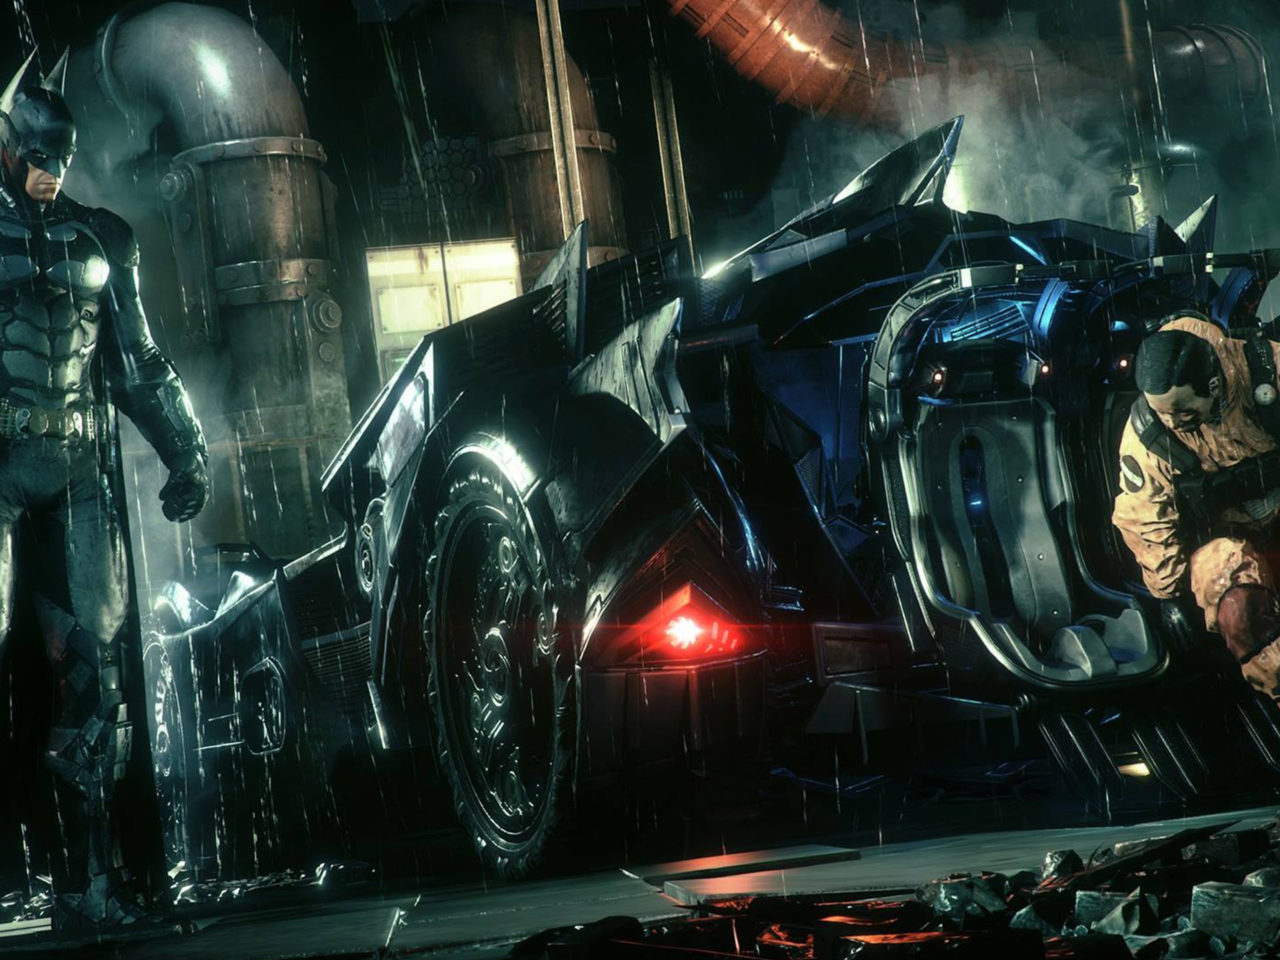 Wallpaper Desktop 1366x768 Car Batman Arkham Knight Beth Car Hd Wallpaper Download For